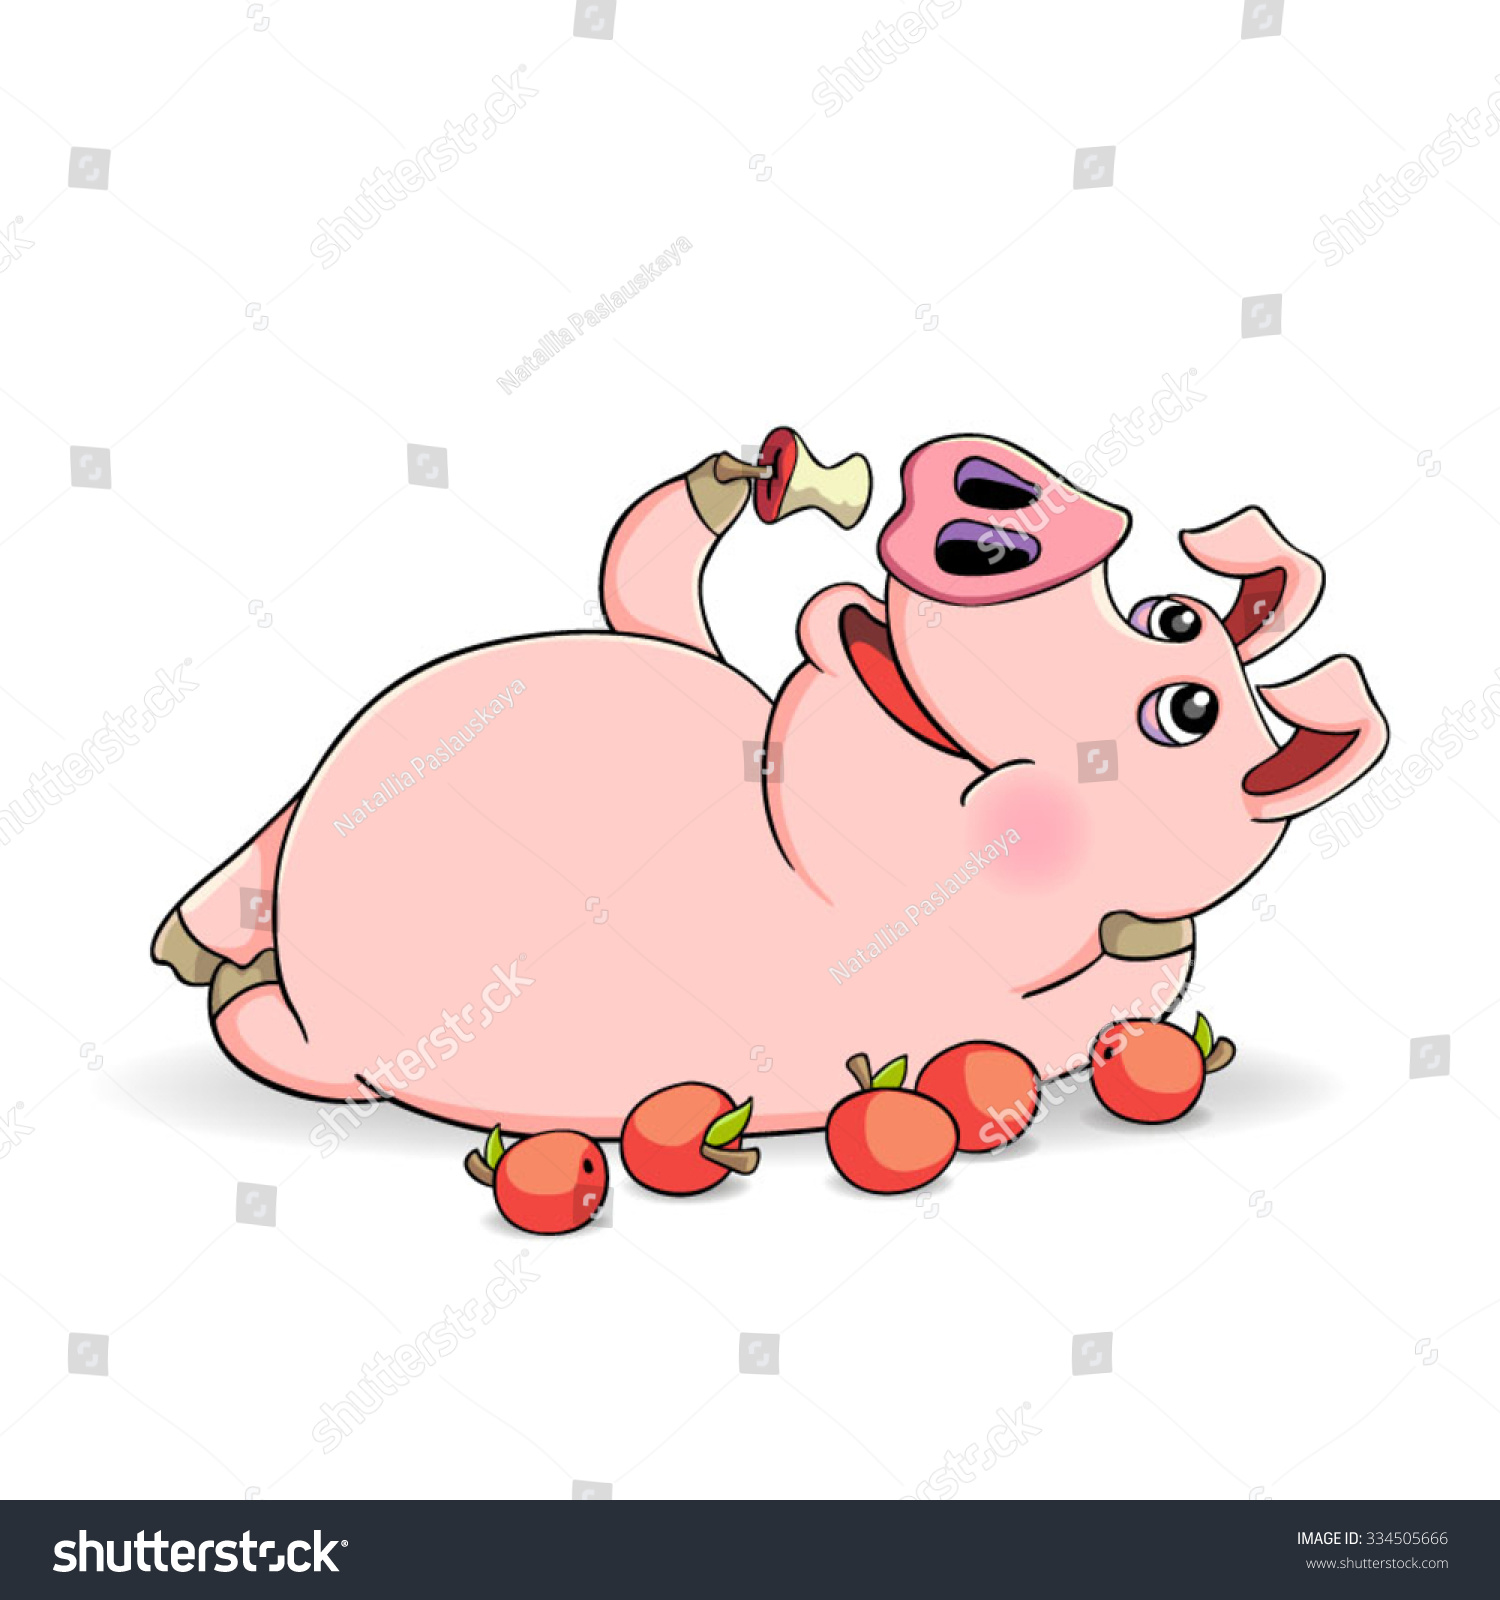 animals eating clipart - photo #34